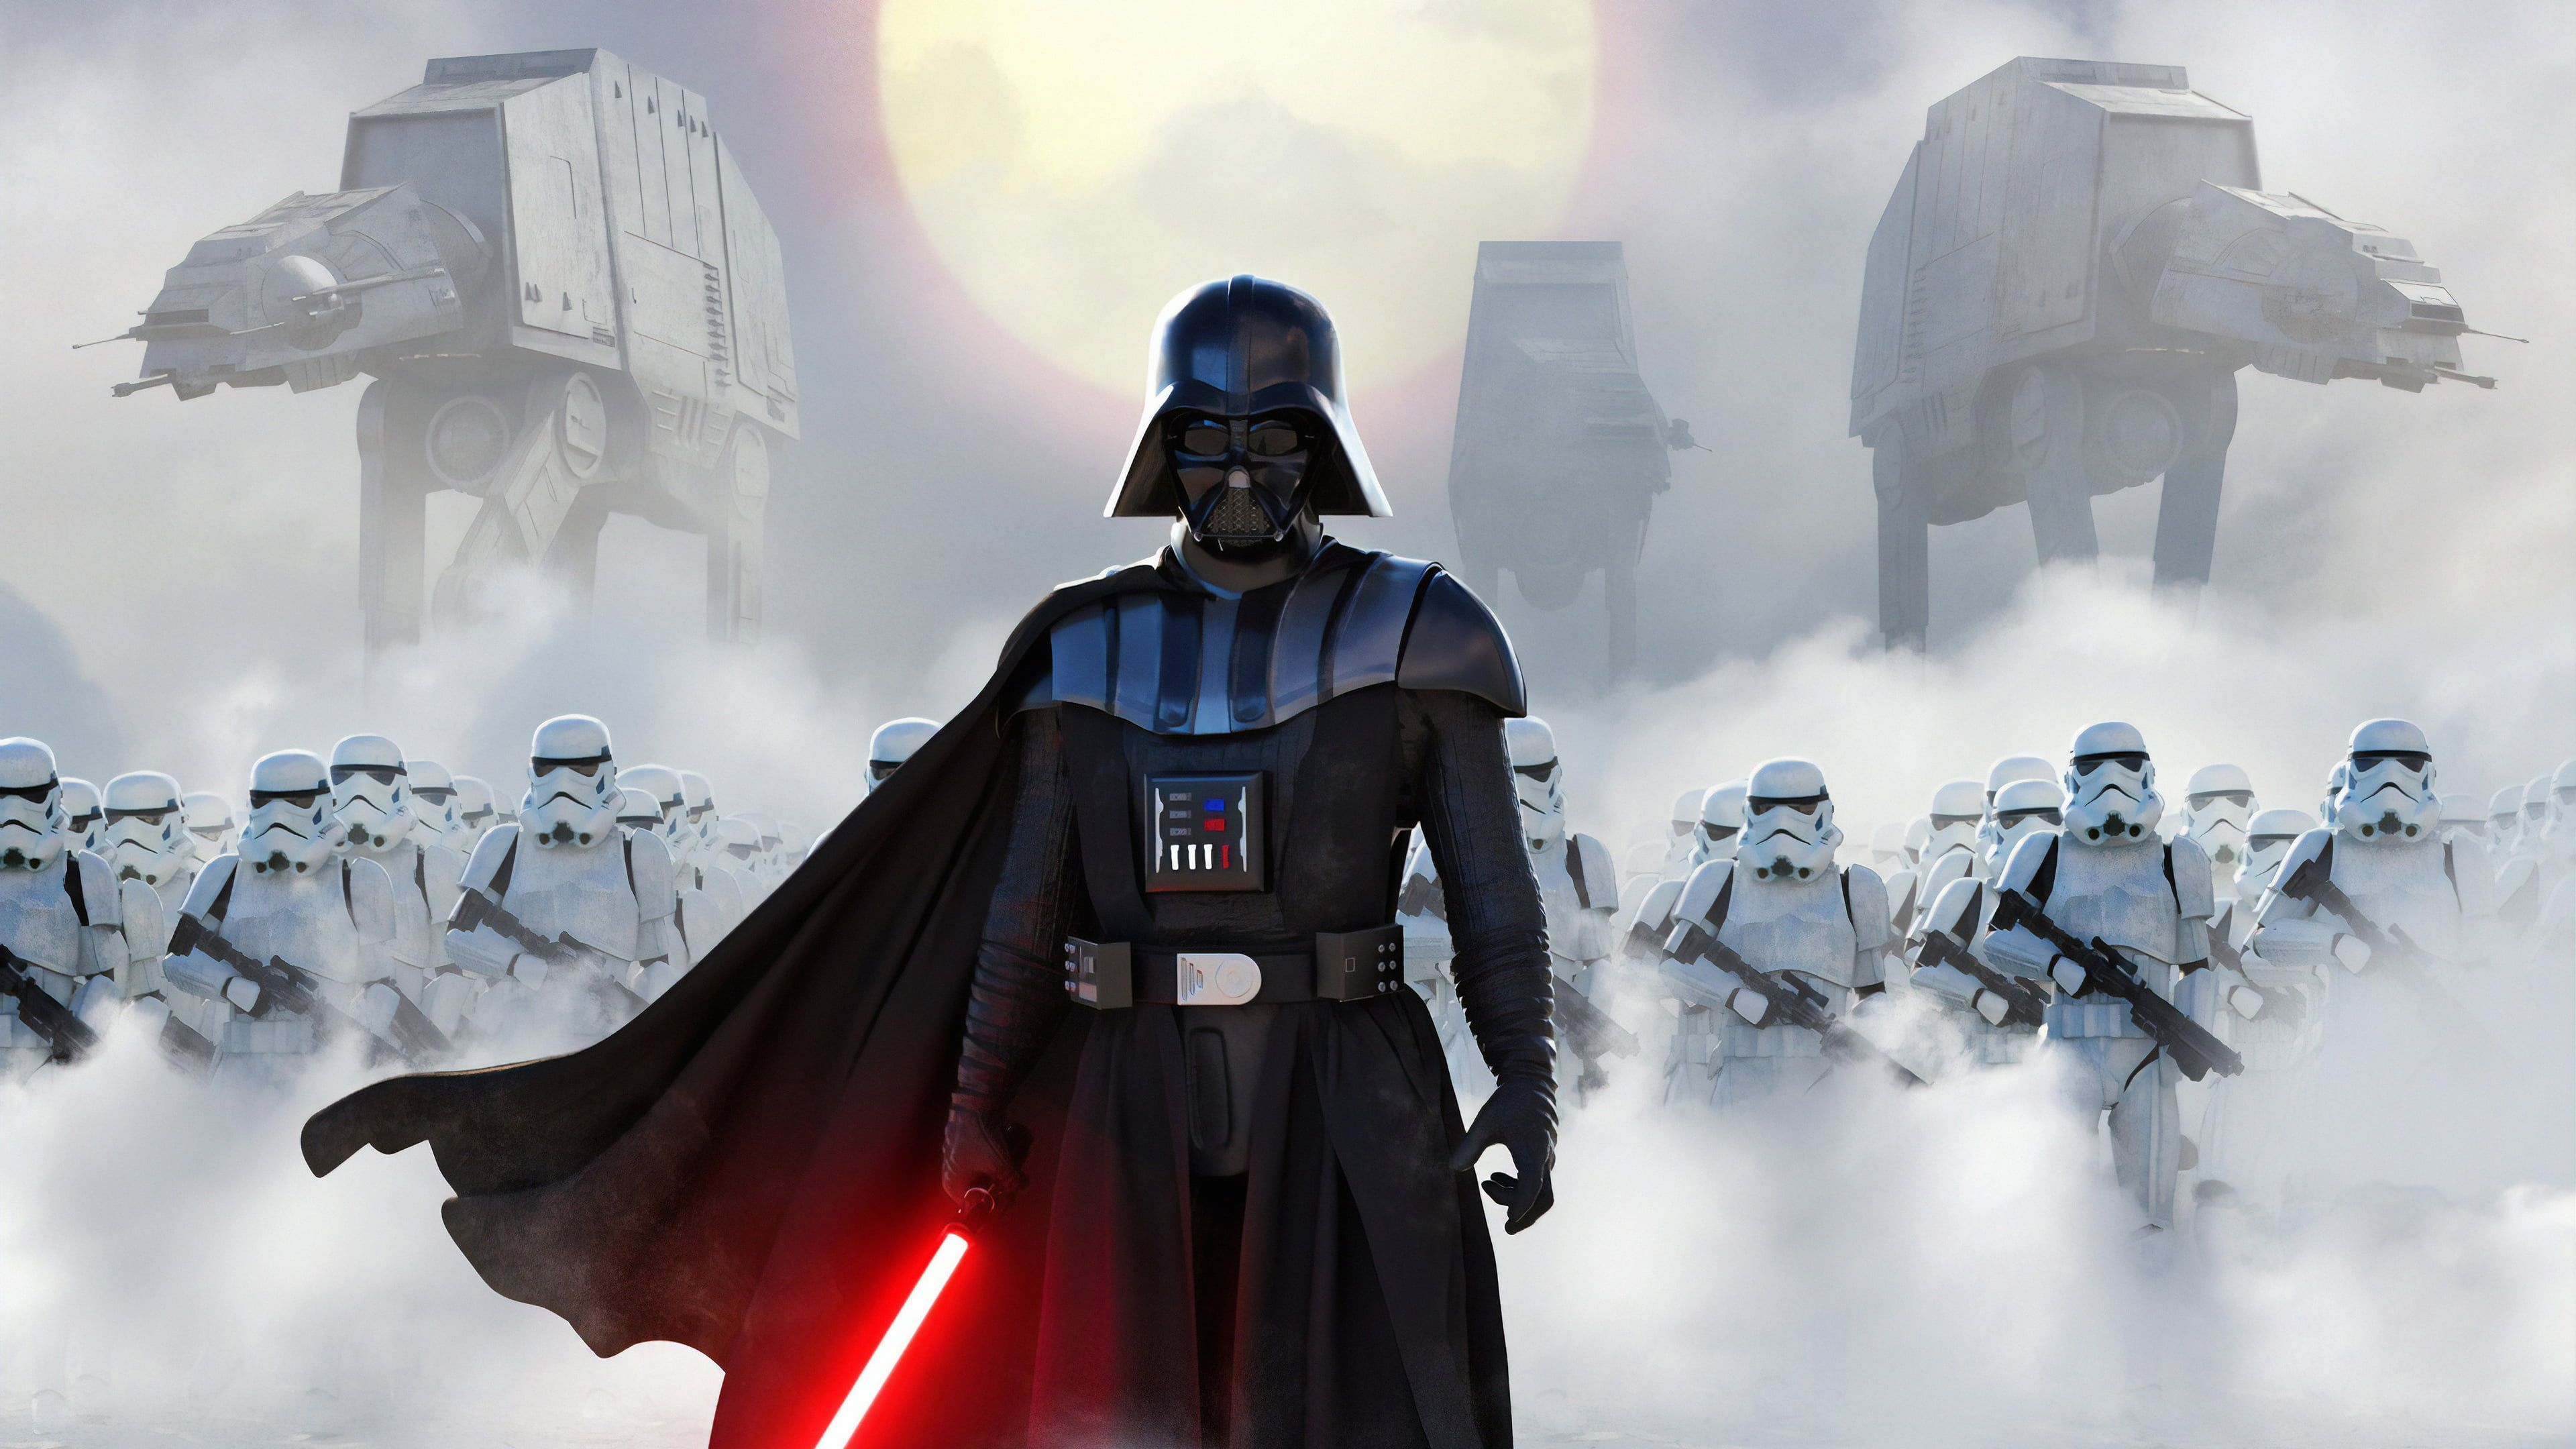 Darth Vader And Stormtroopers Wallpapers Wallpaper Cave